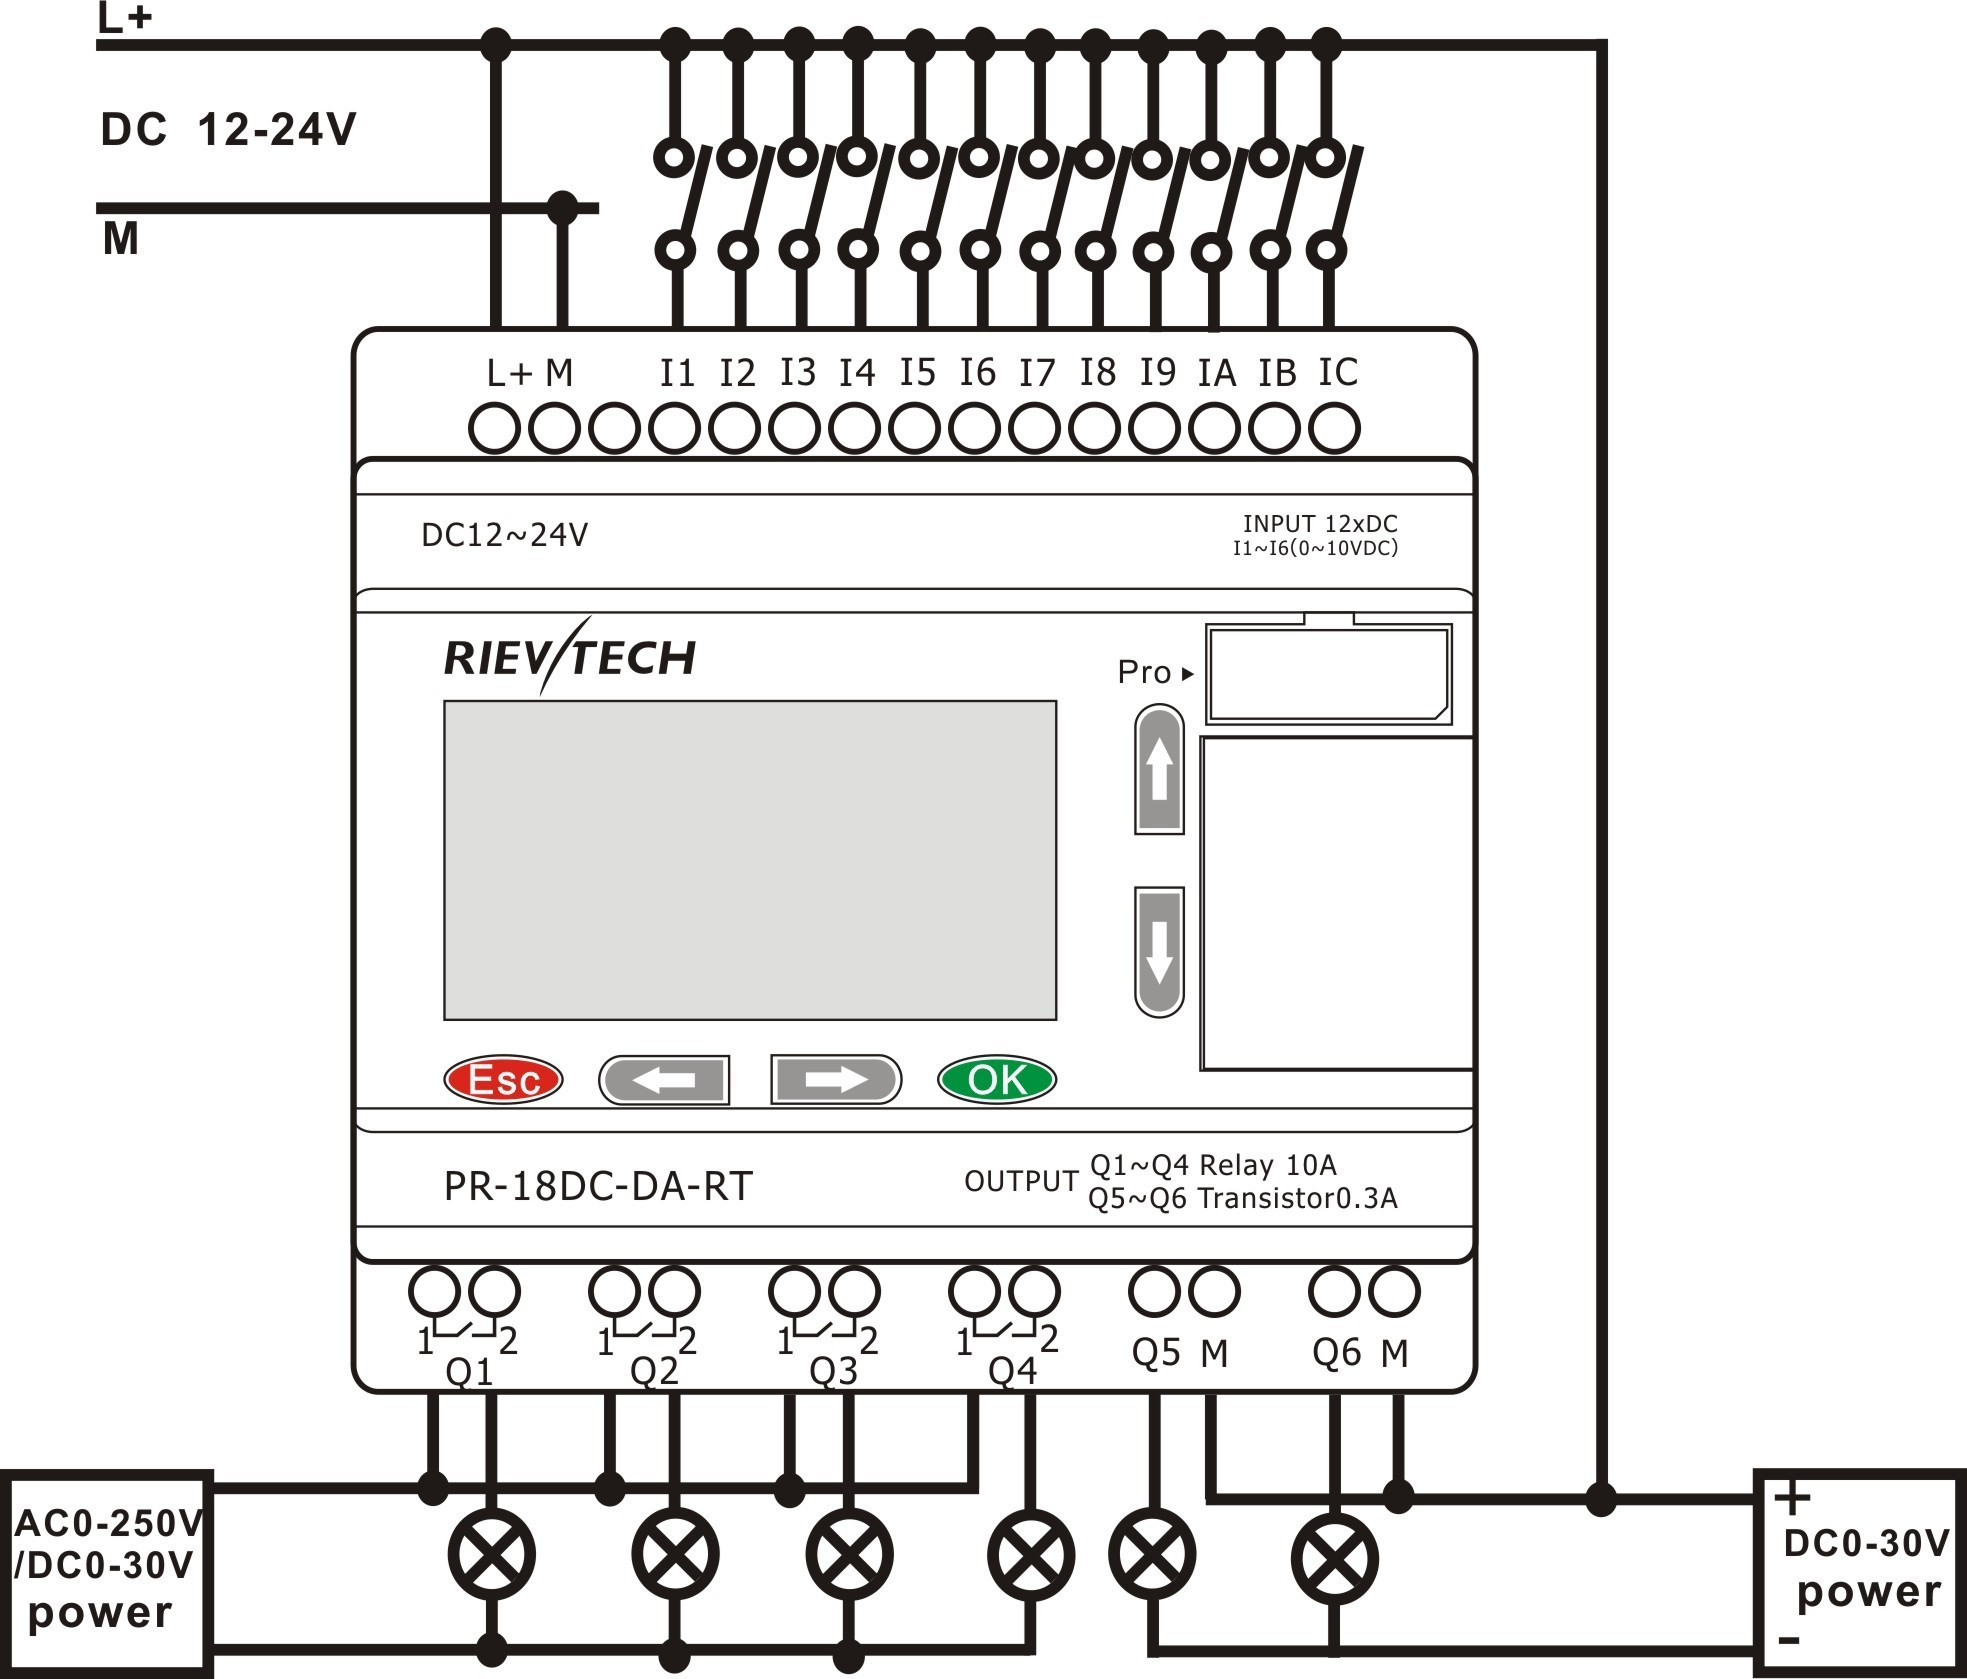 Stupendous Plc Wiring Diagram Software Collection Wiring Cloud Scatahouseofspiritnl